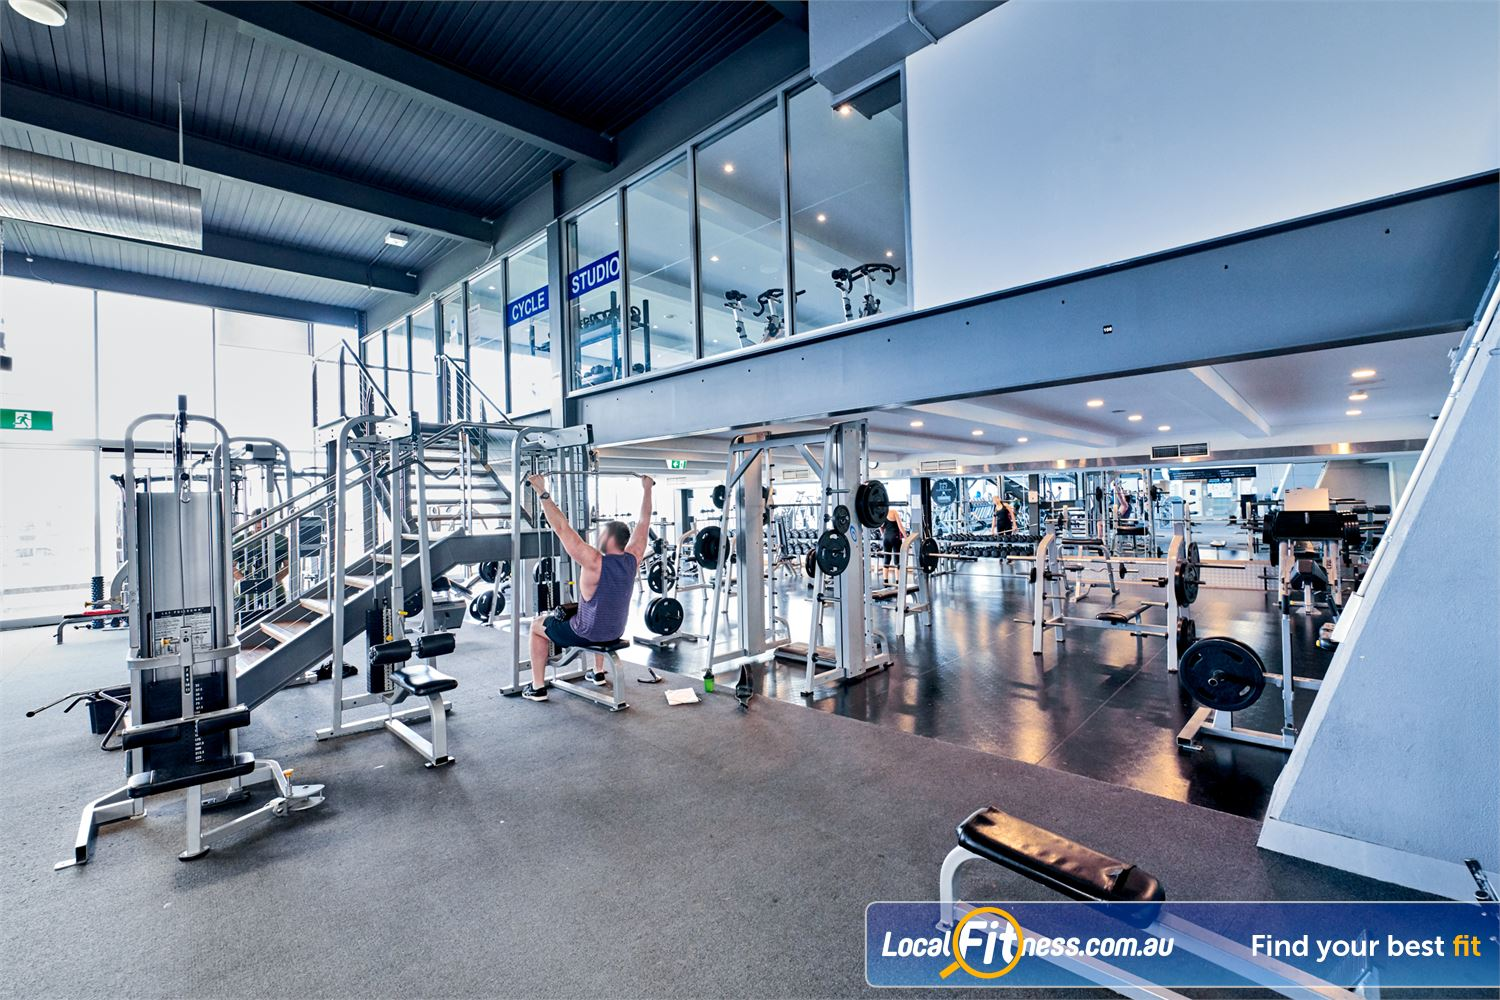 Goodlife Health Clubs Waverley Park Near Noble Park Our Mulgrave gym includes multiple lat pull-downs so you don't have to wait.